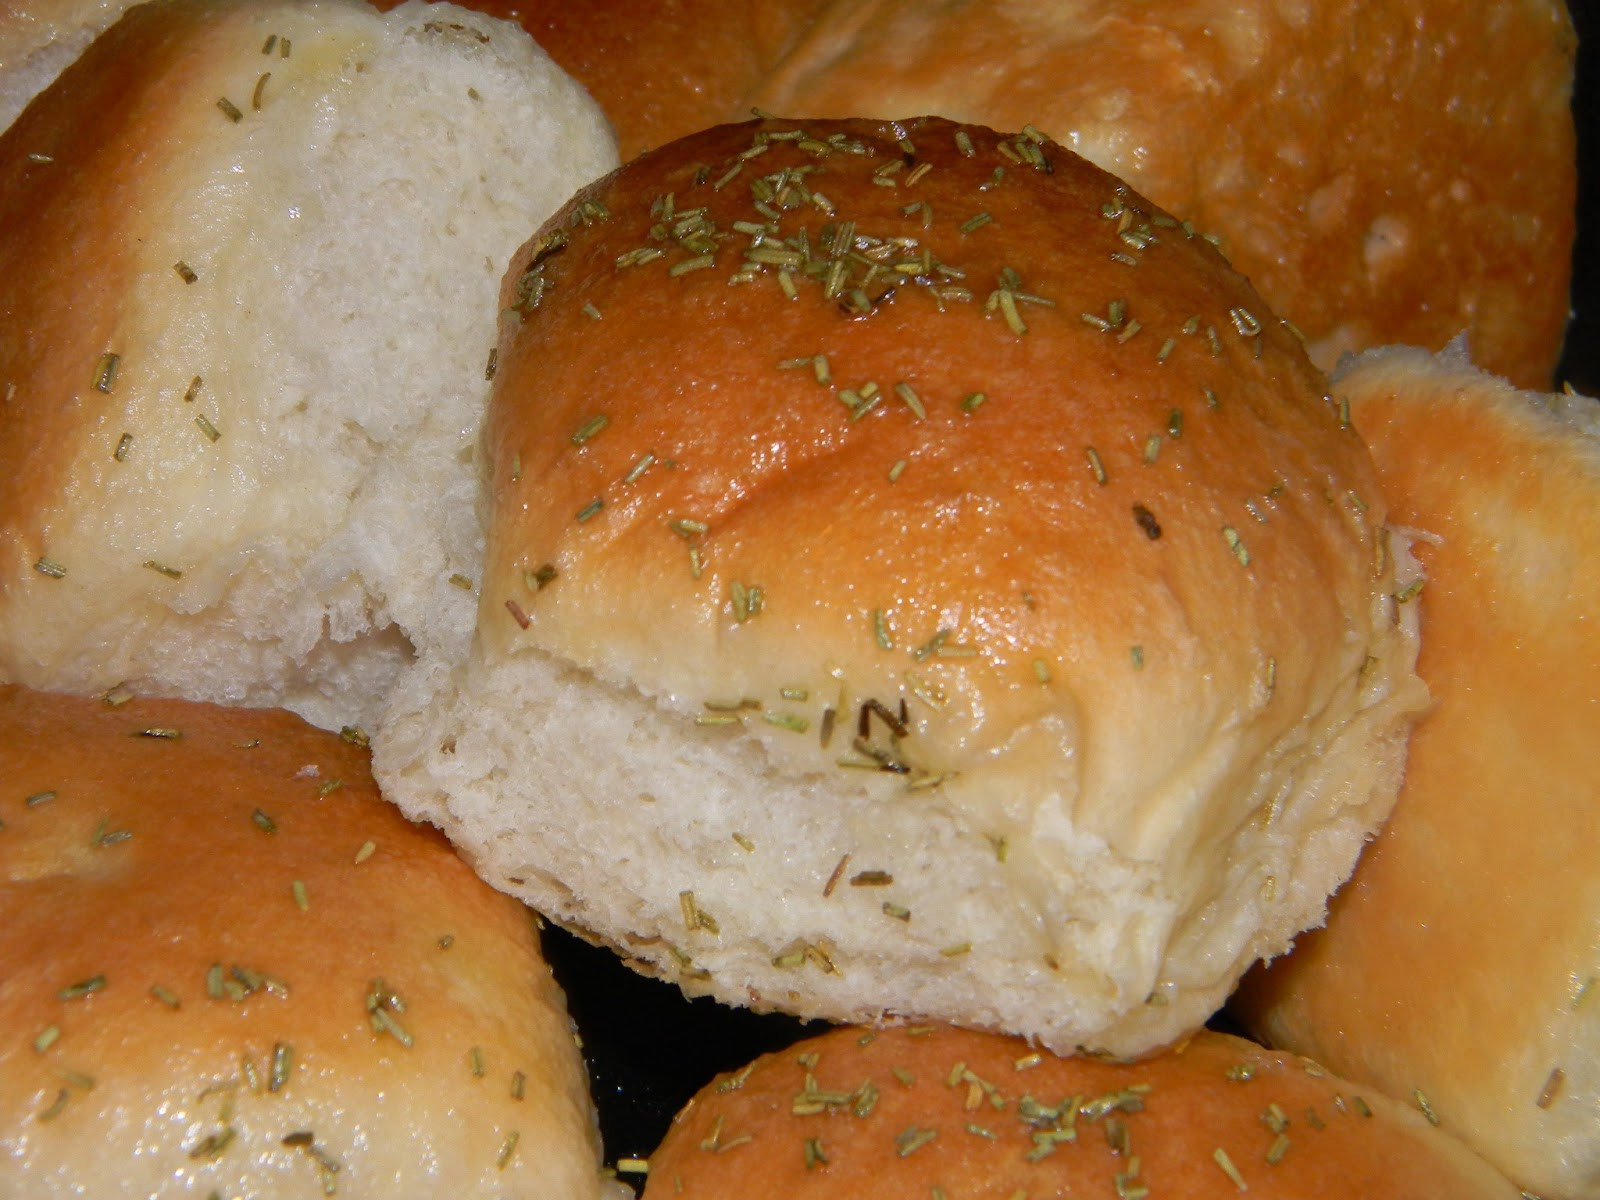 ... buttered rosemary buttered rosemary rolls buttered rosemary rolls a